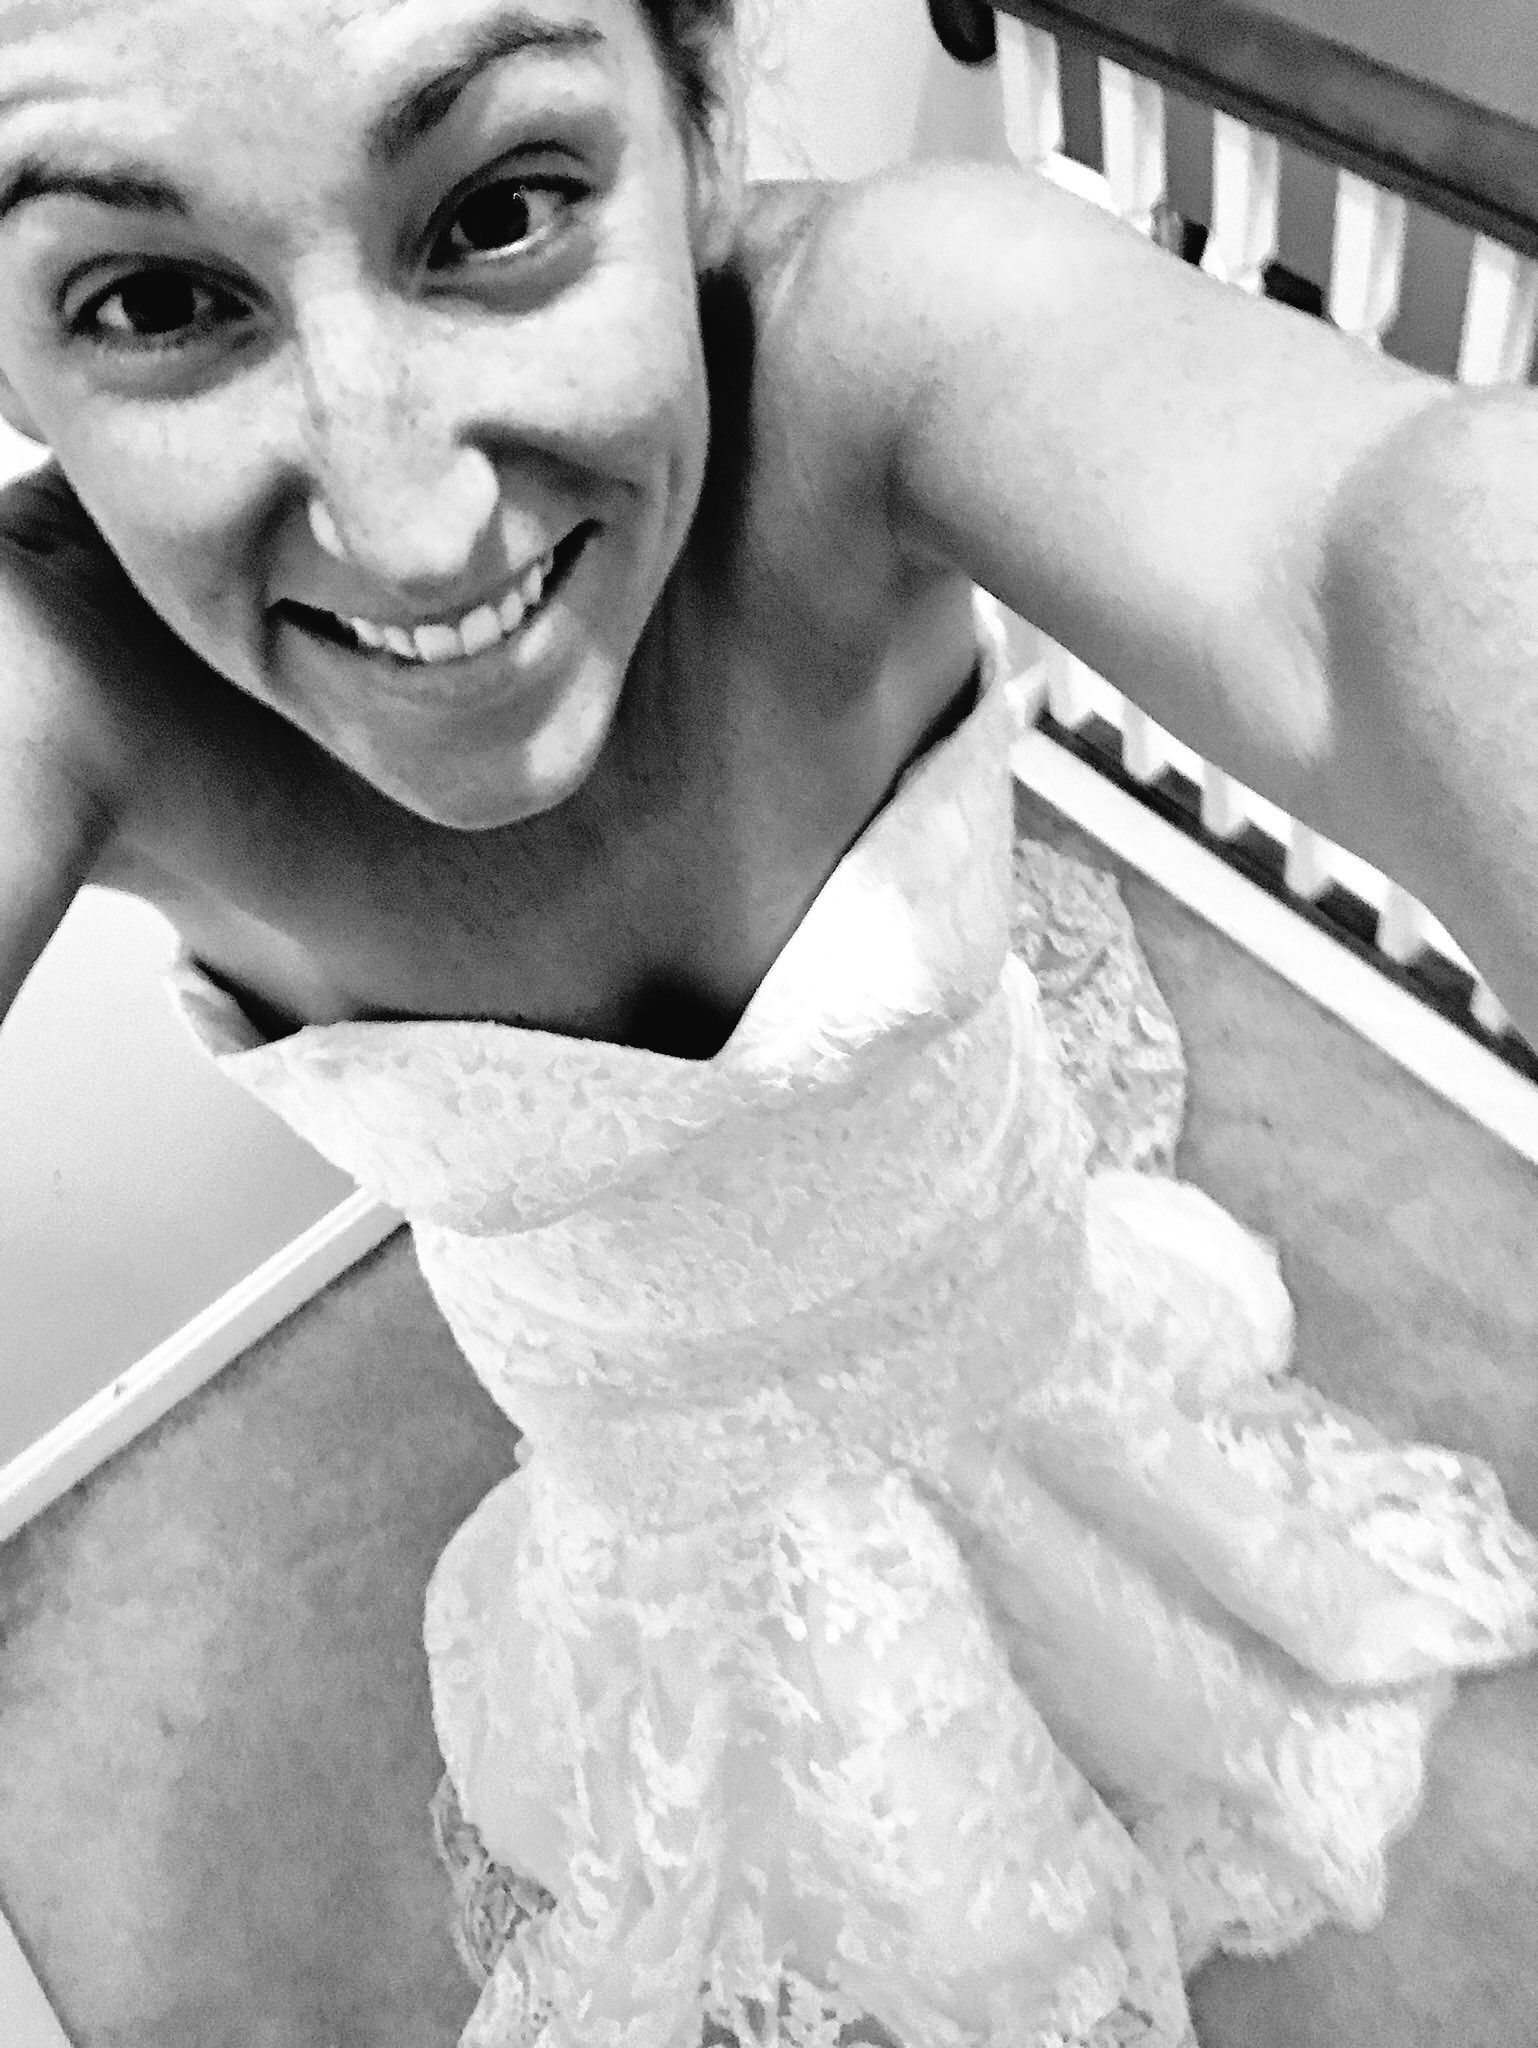 Wedding Dress - Wedding Dress Selfie - Wedding Gown Photo - Mermaid Wedding Lace Gown - Communikait by Kait Hanson